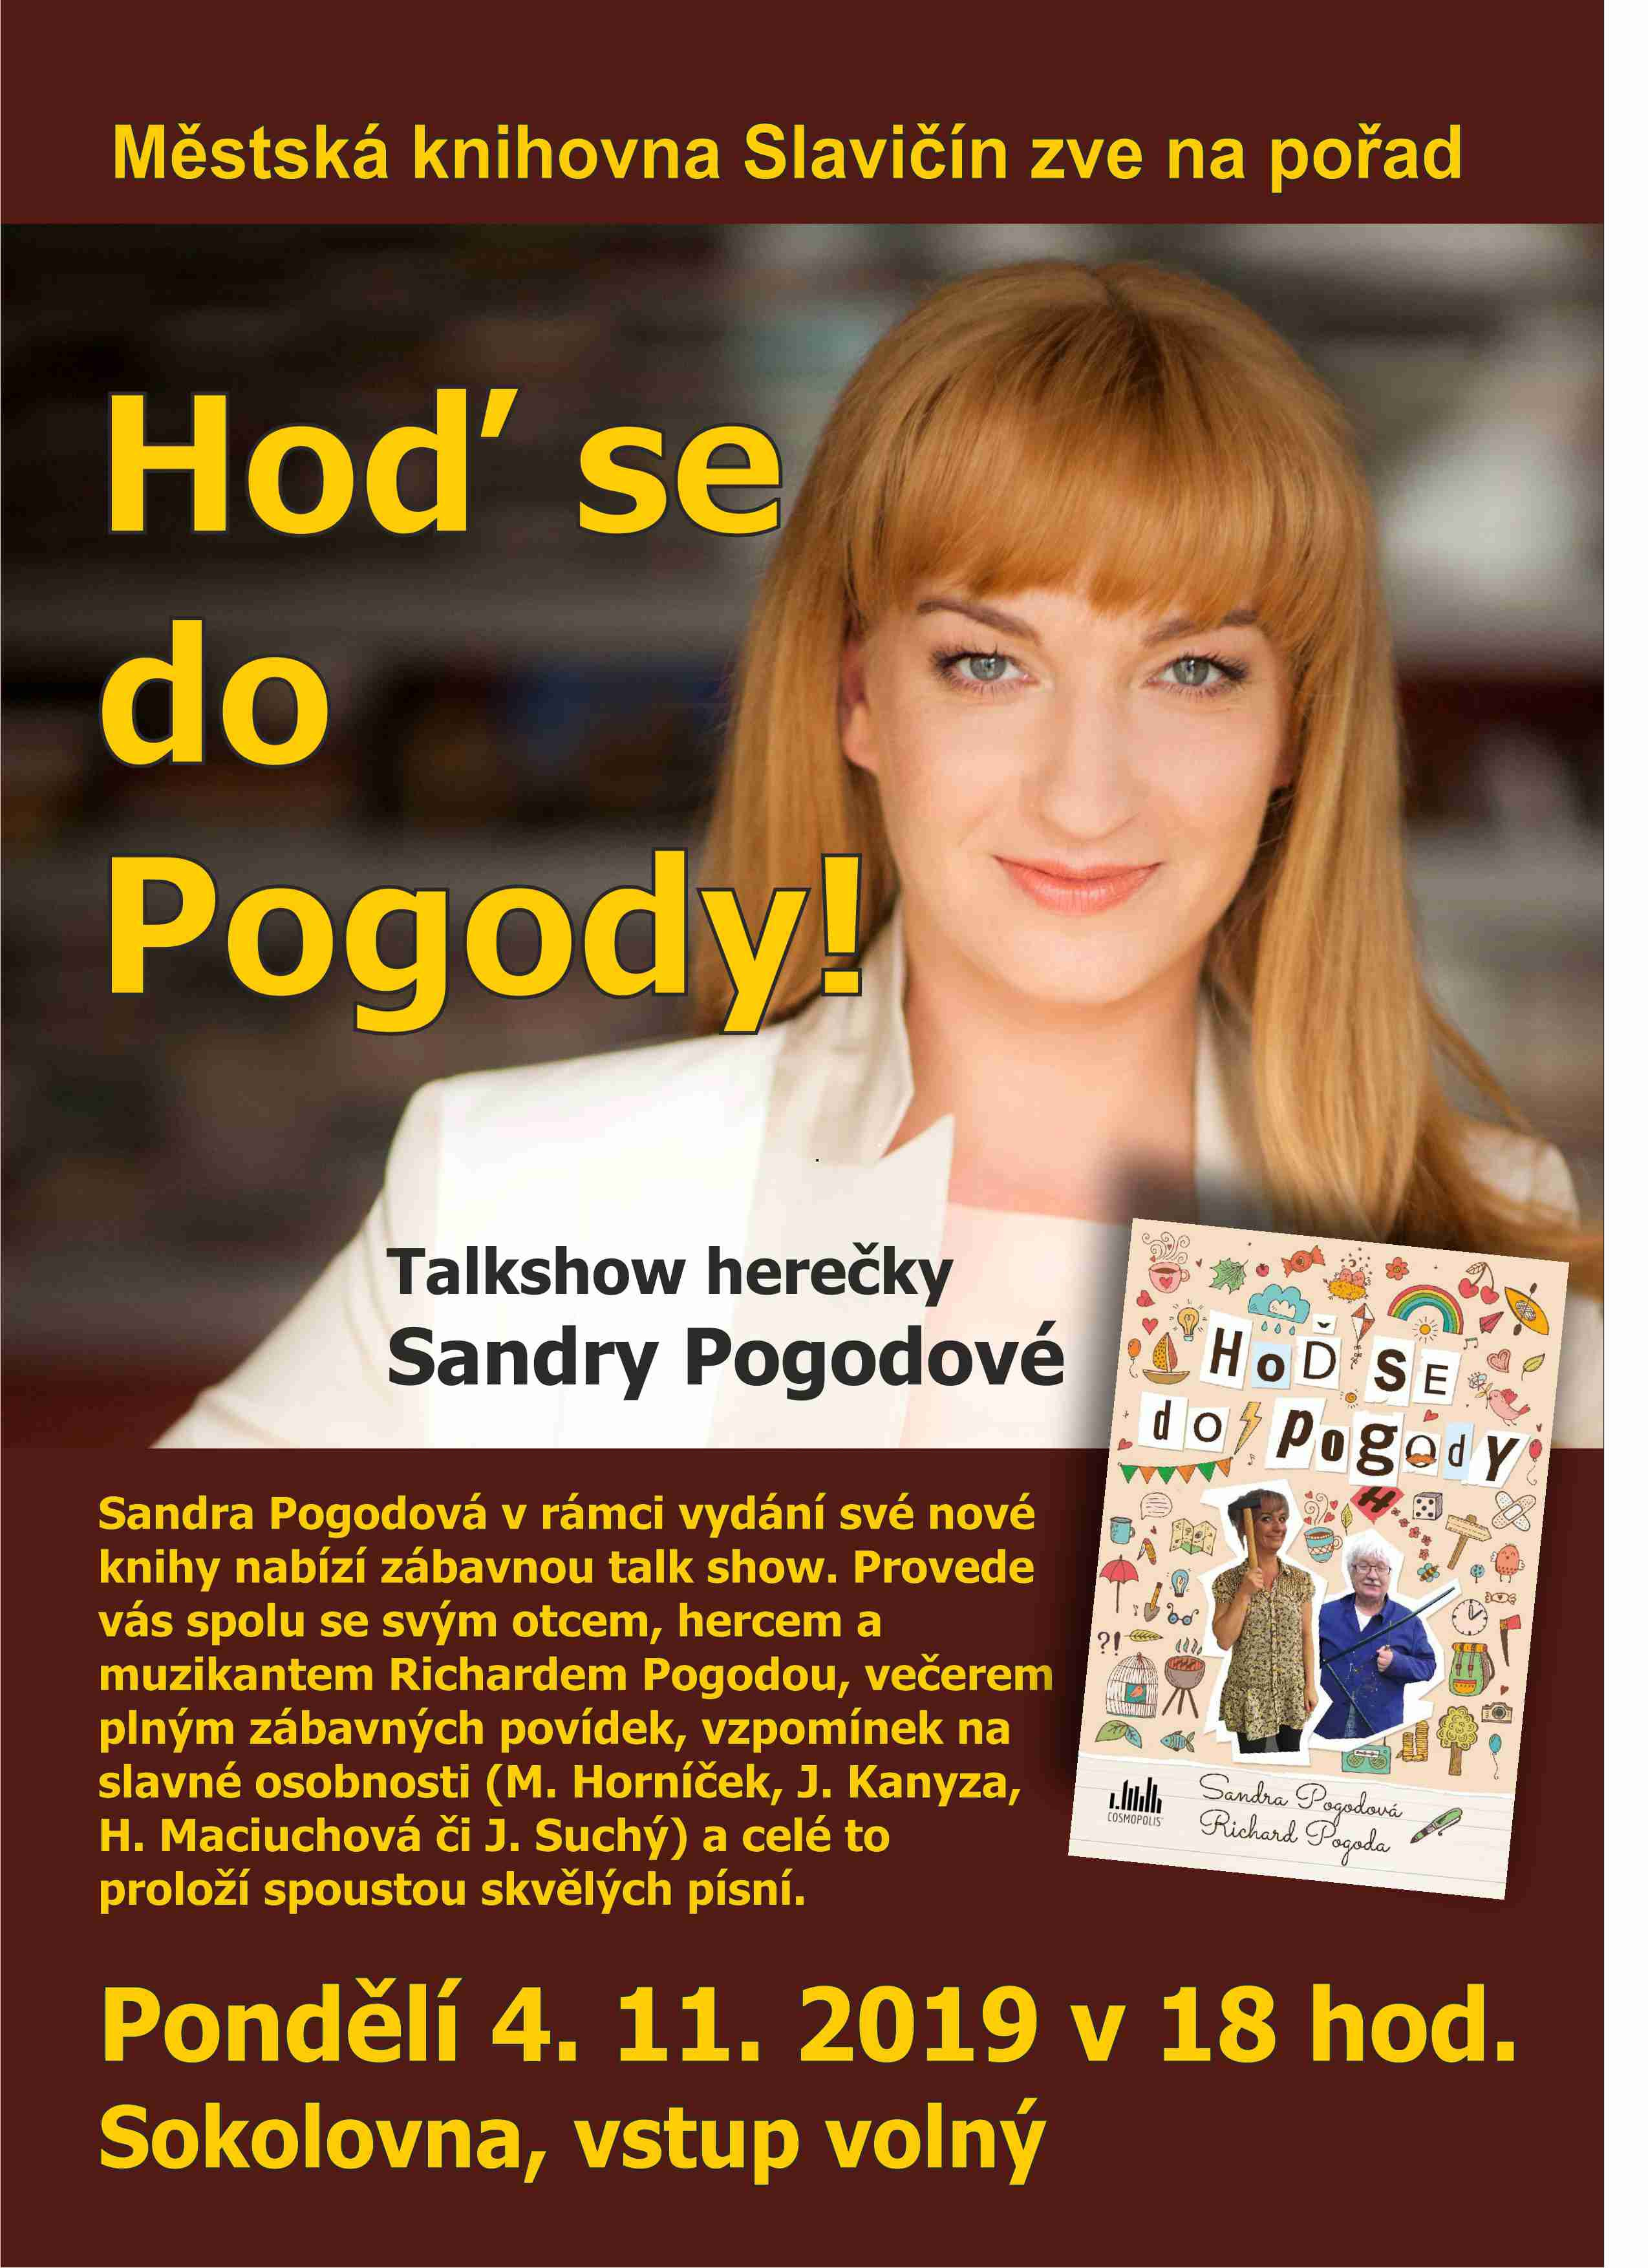 hod-se-do-pogody-.jpg